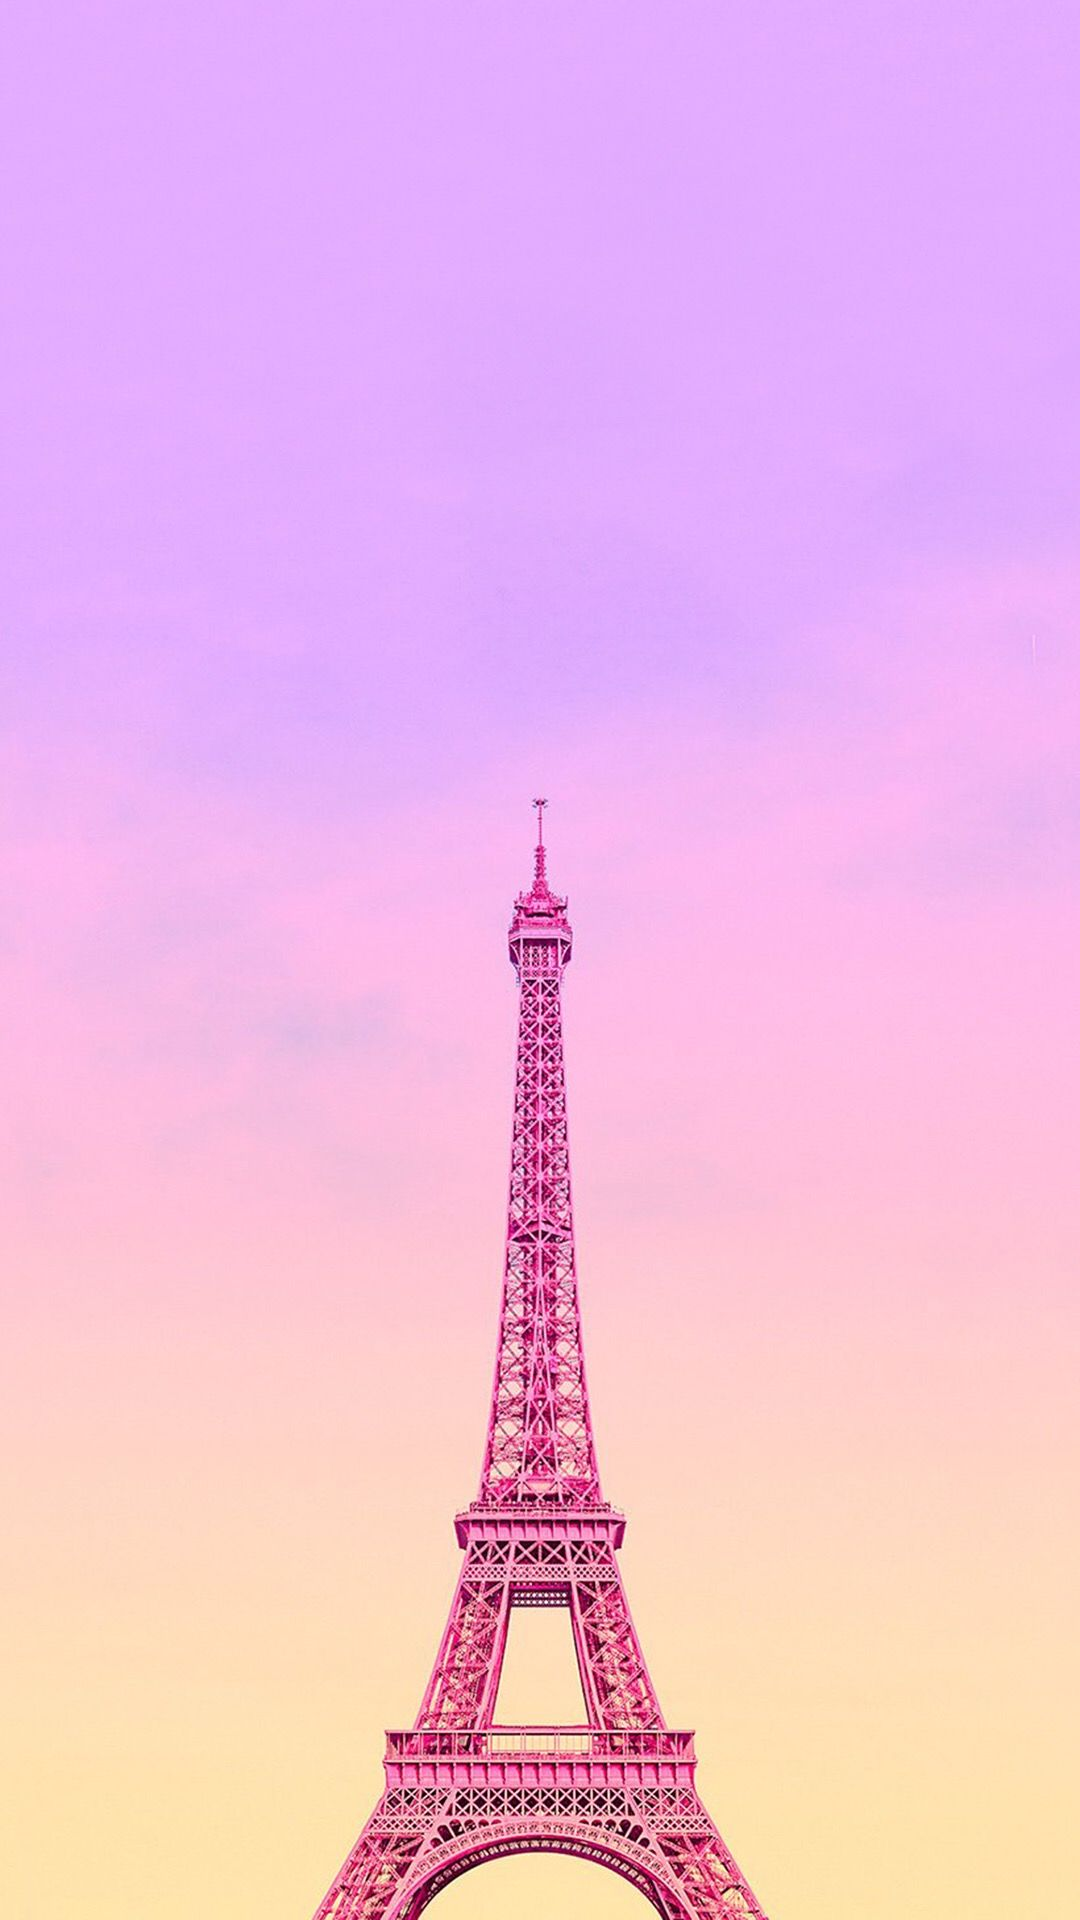 Paris Wallpaper Sparkle Pink Colorful Pretty Phone